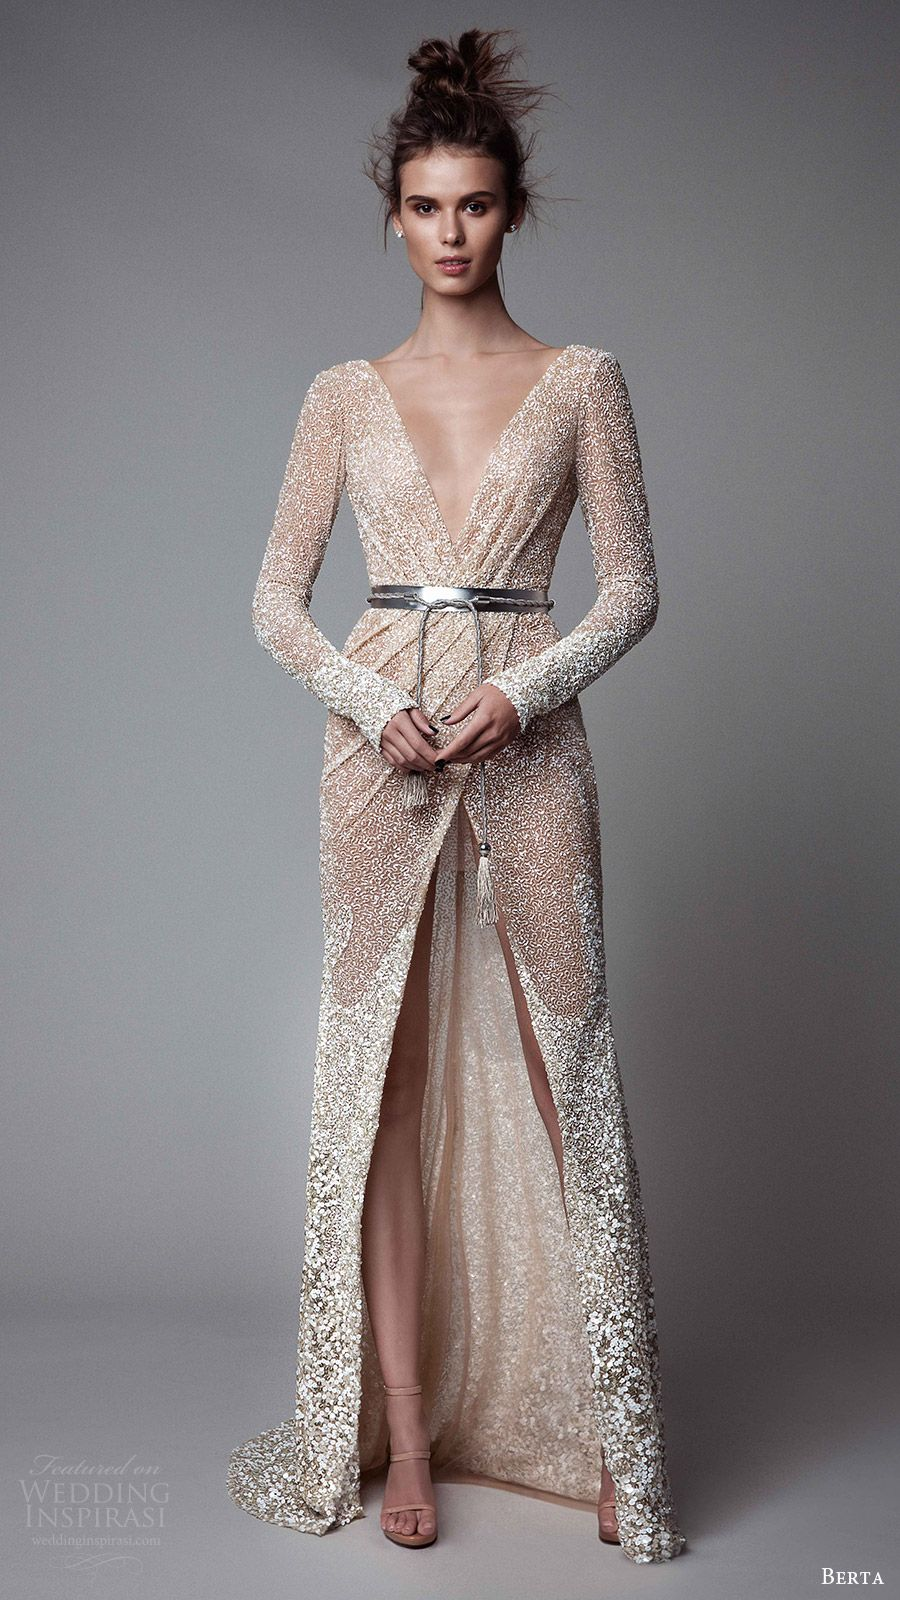 Berta rtw fall long sleeves deep v neck sheath evening